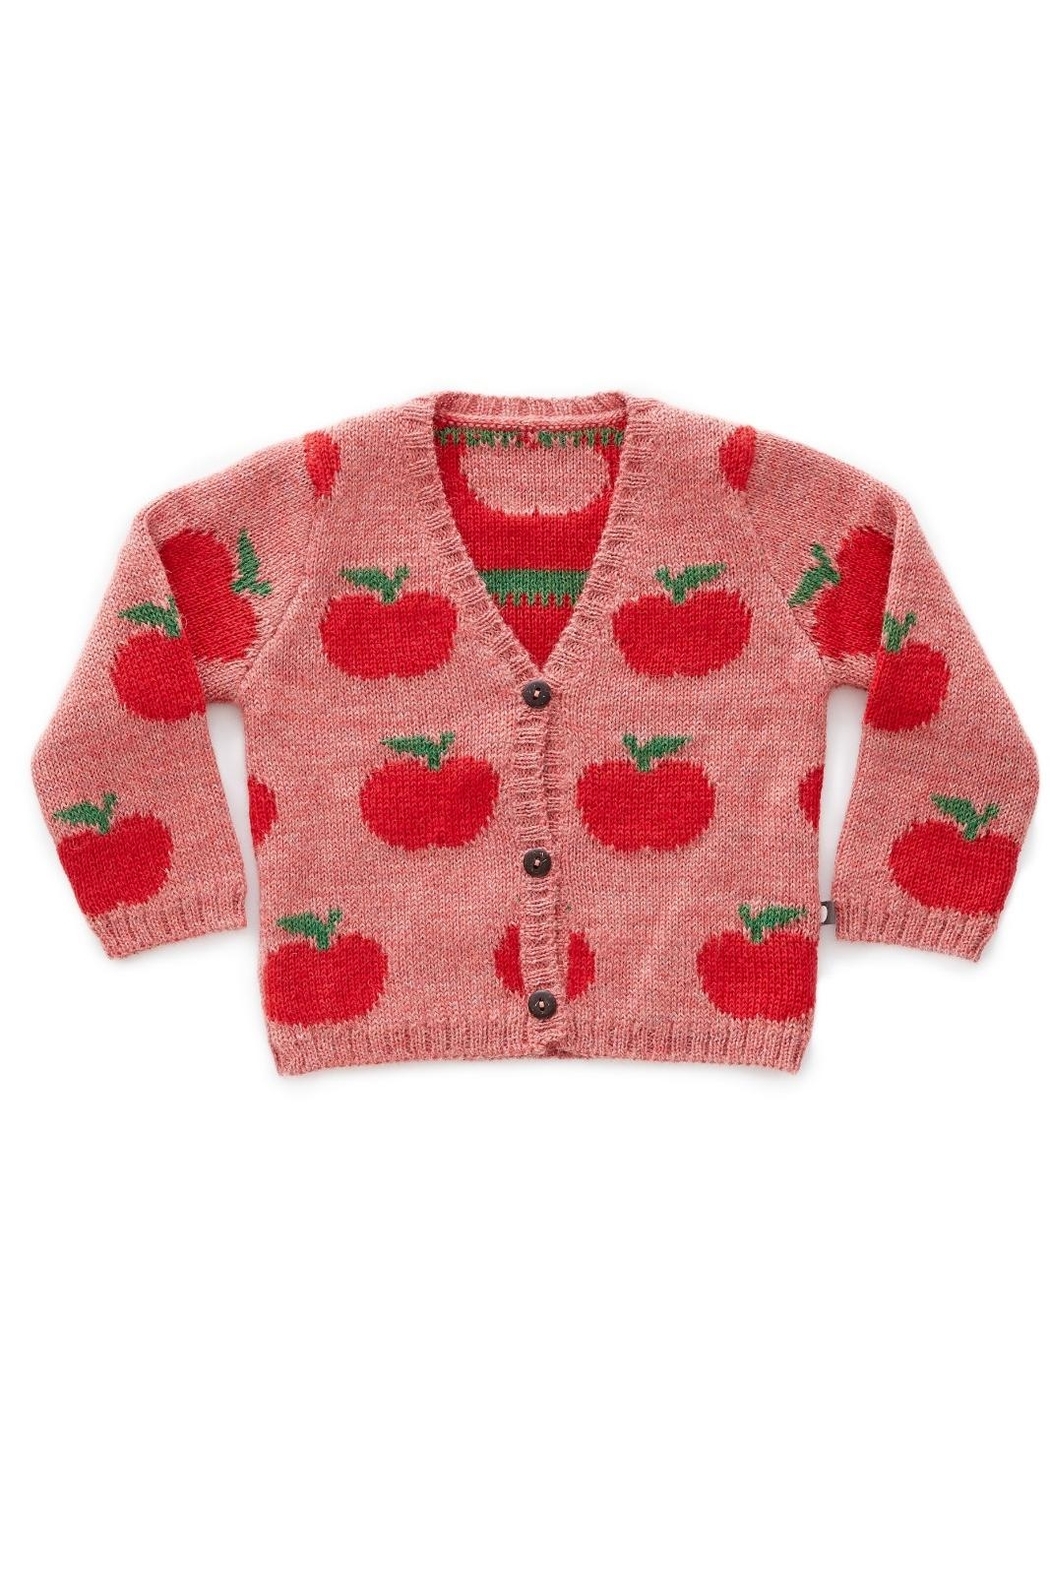 Oeuf Apple Kids' Cardigan - Front Cropped Image